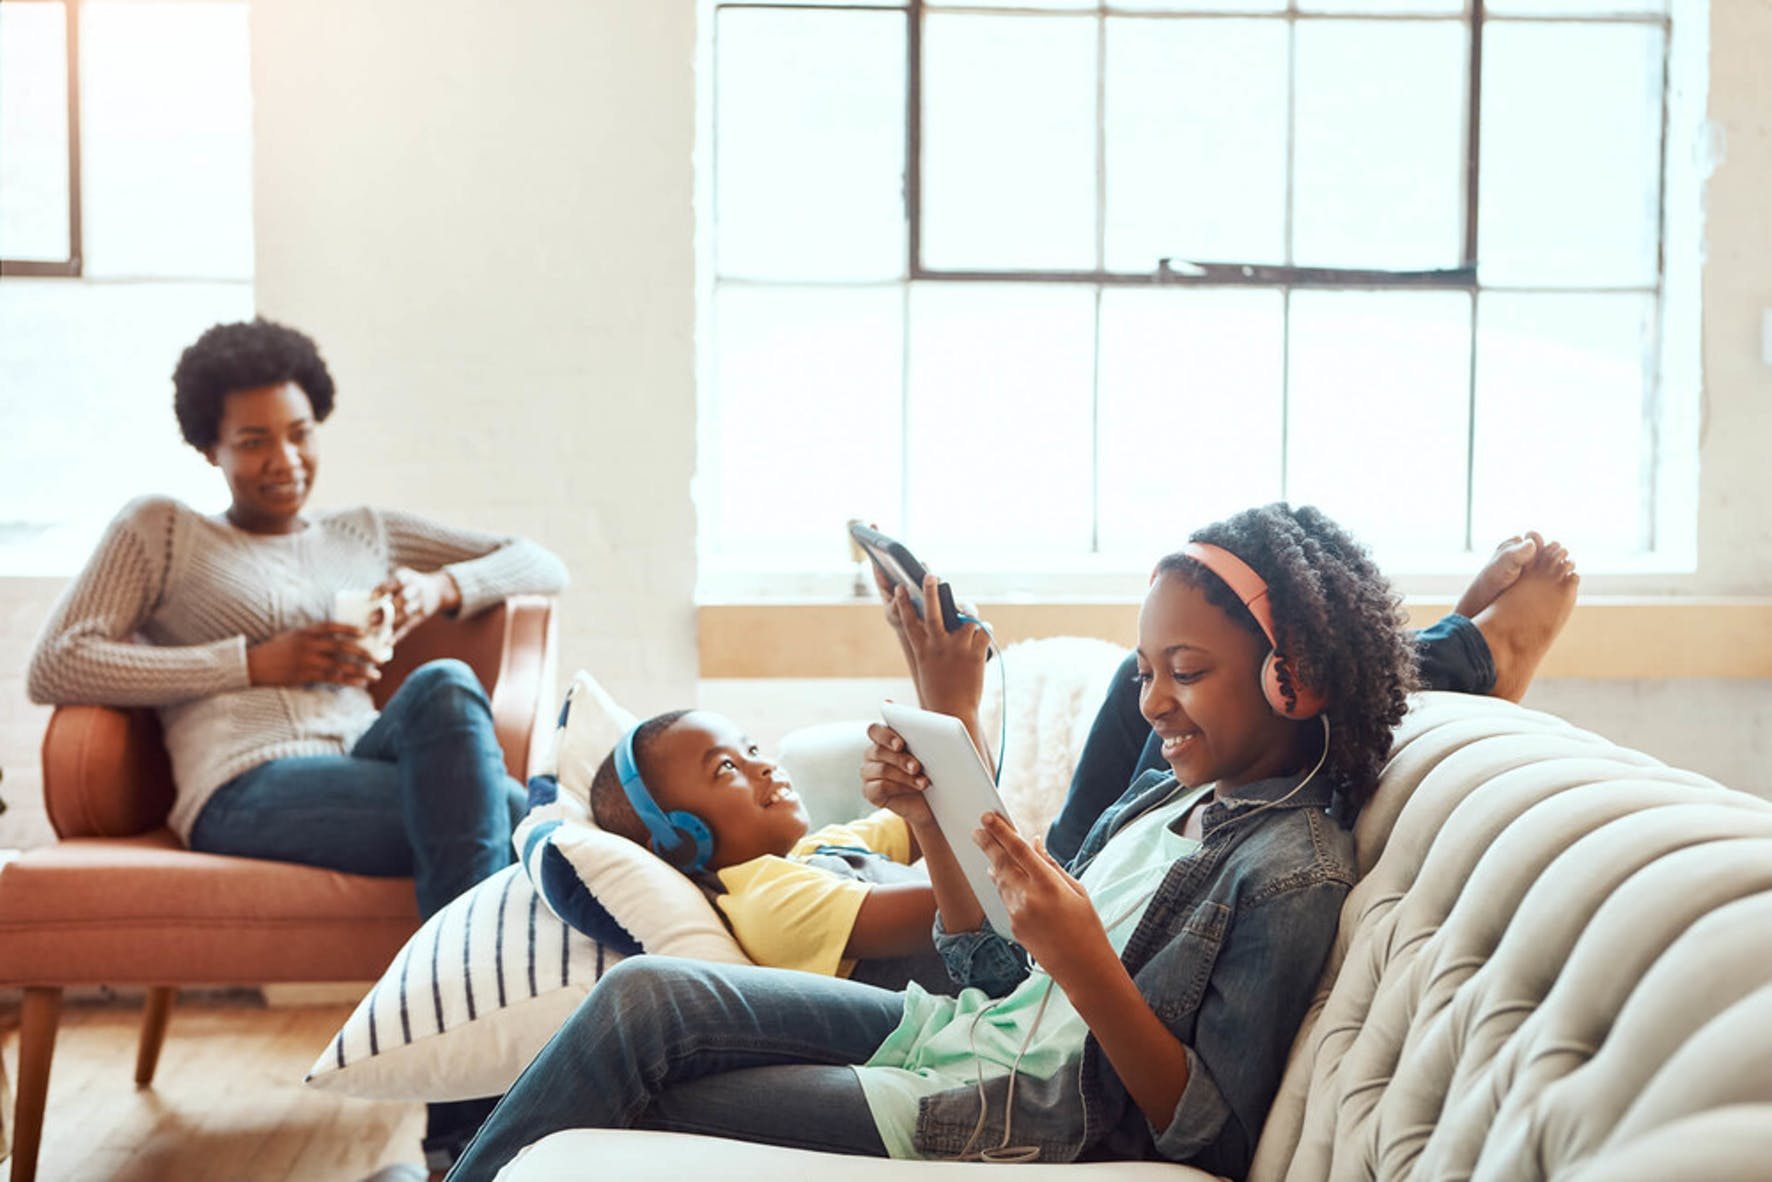 Family is enjoying the best cable alternatives on their iPads: Netflix and Hulu.